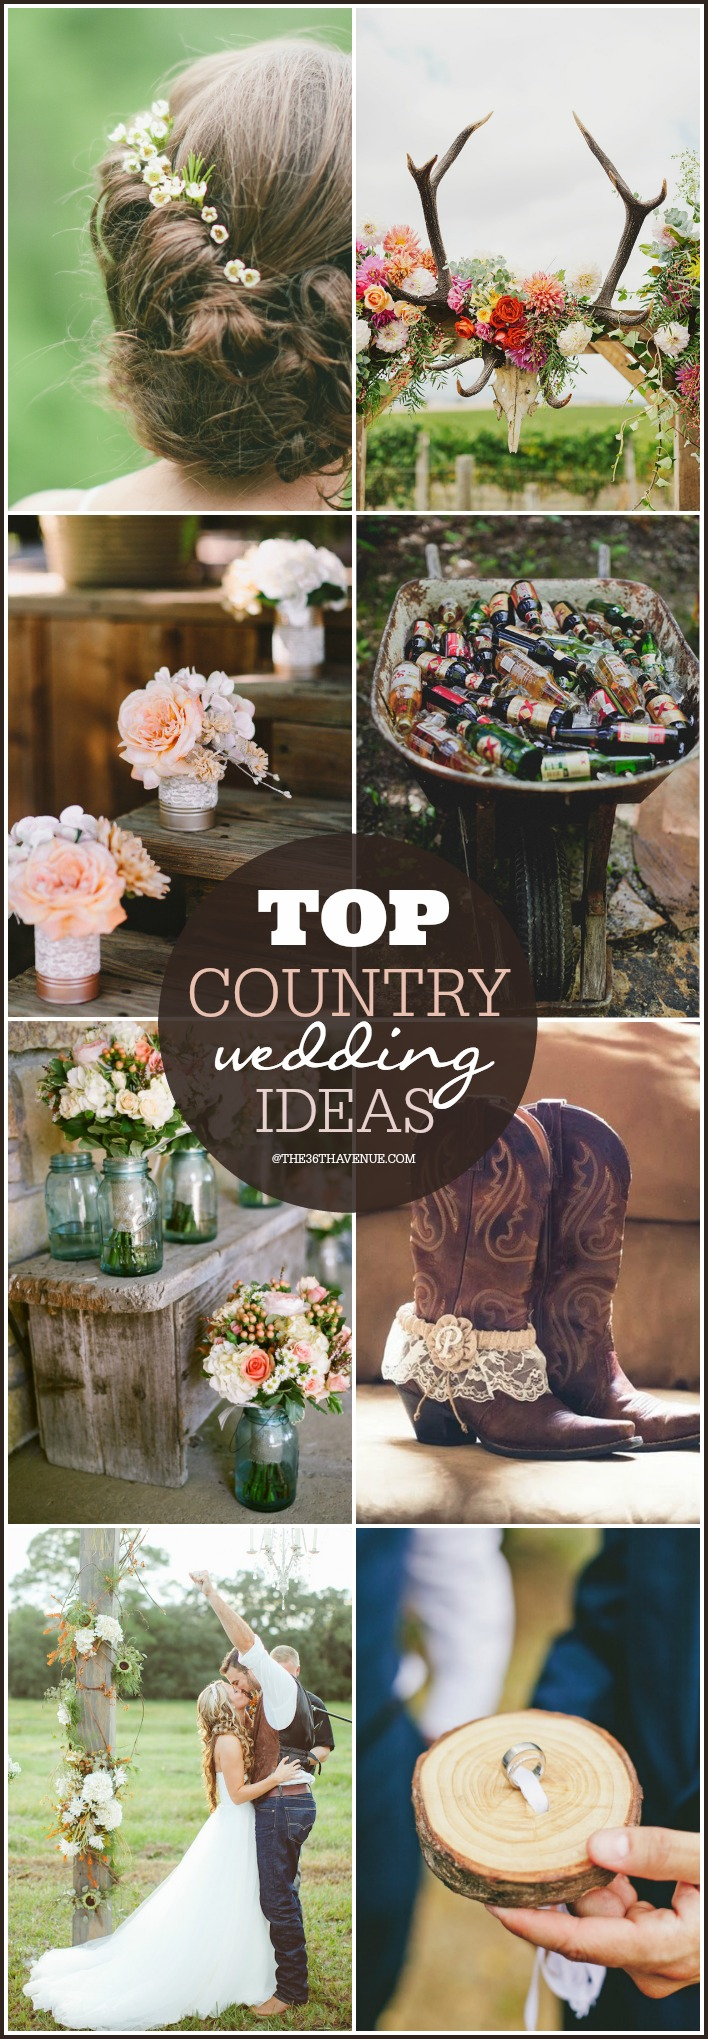 Best Country Wedding Ideas at the36thavenue.com